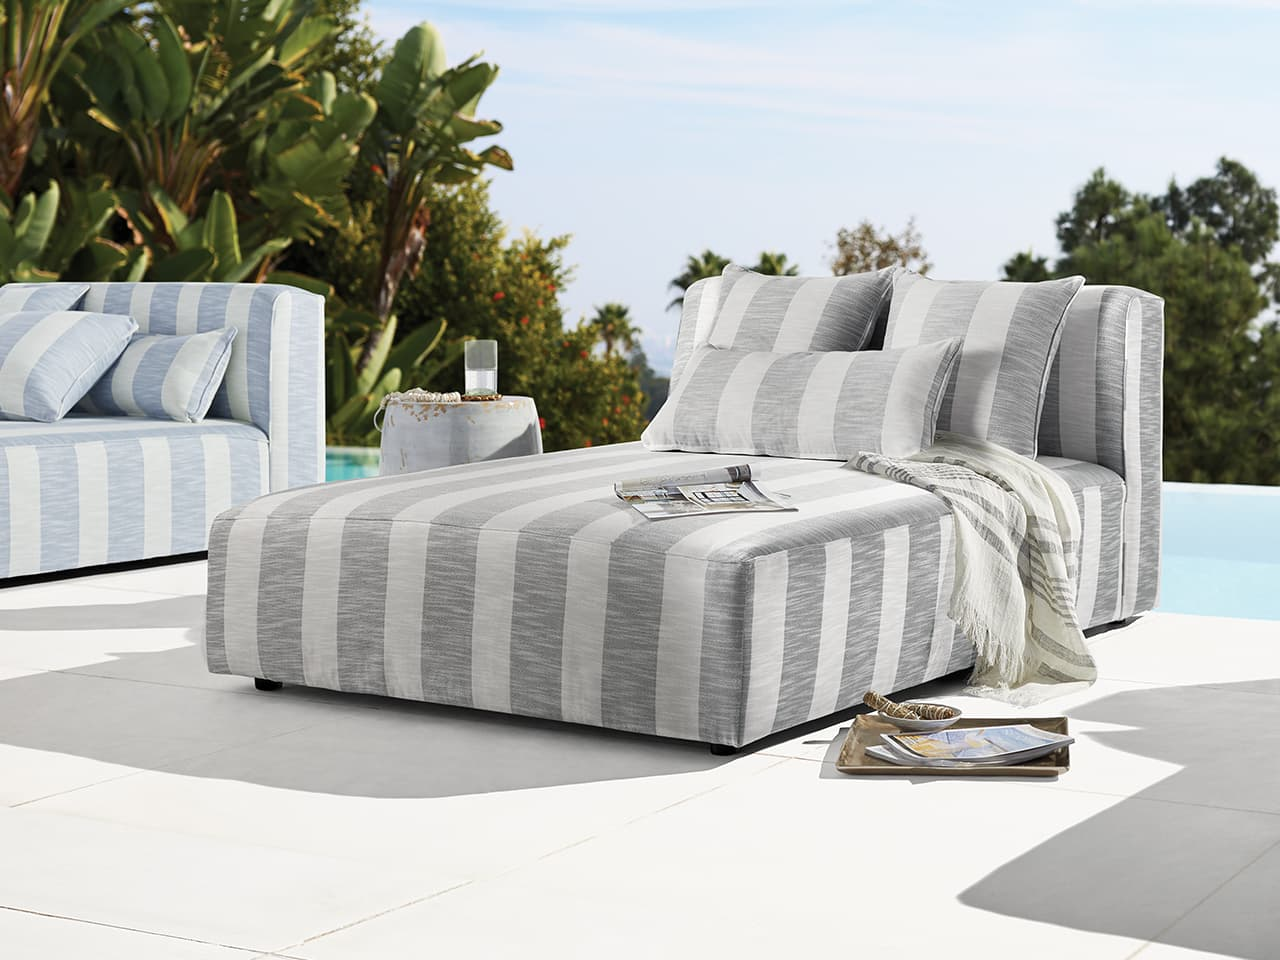 Shop Outdoor Chaises and Lounges